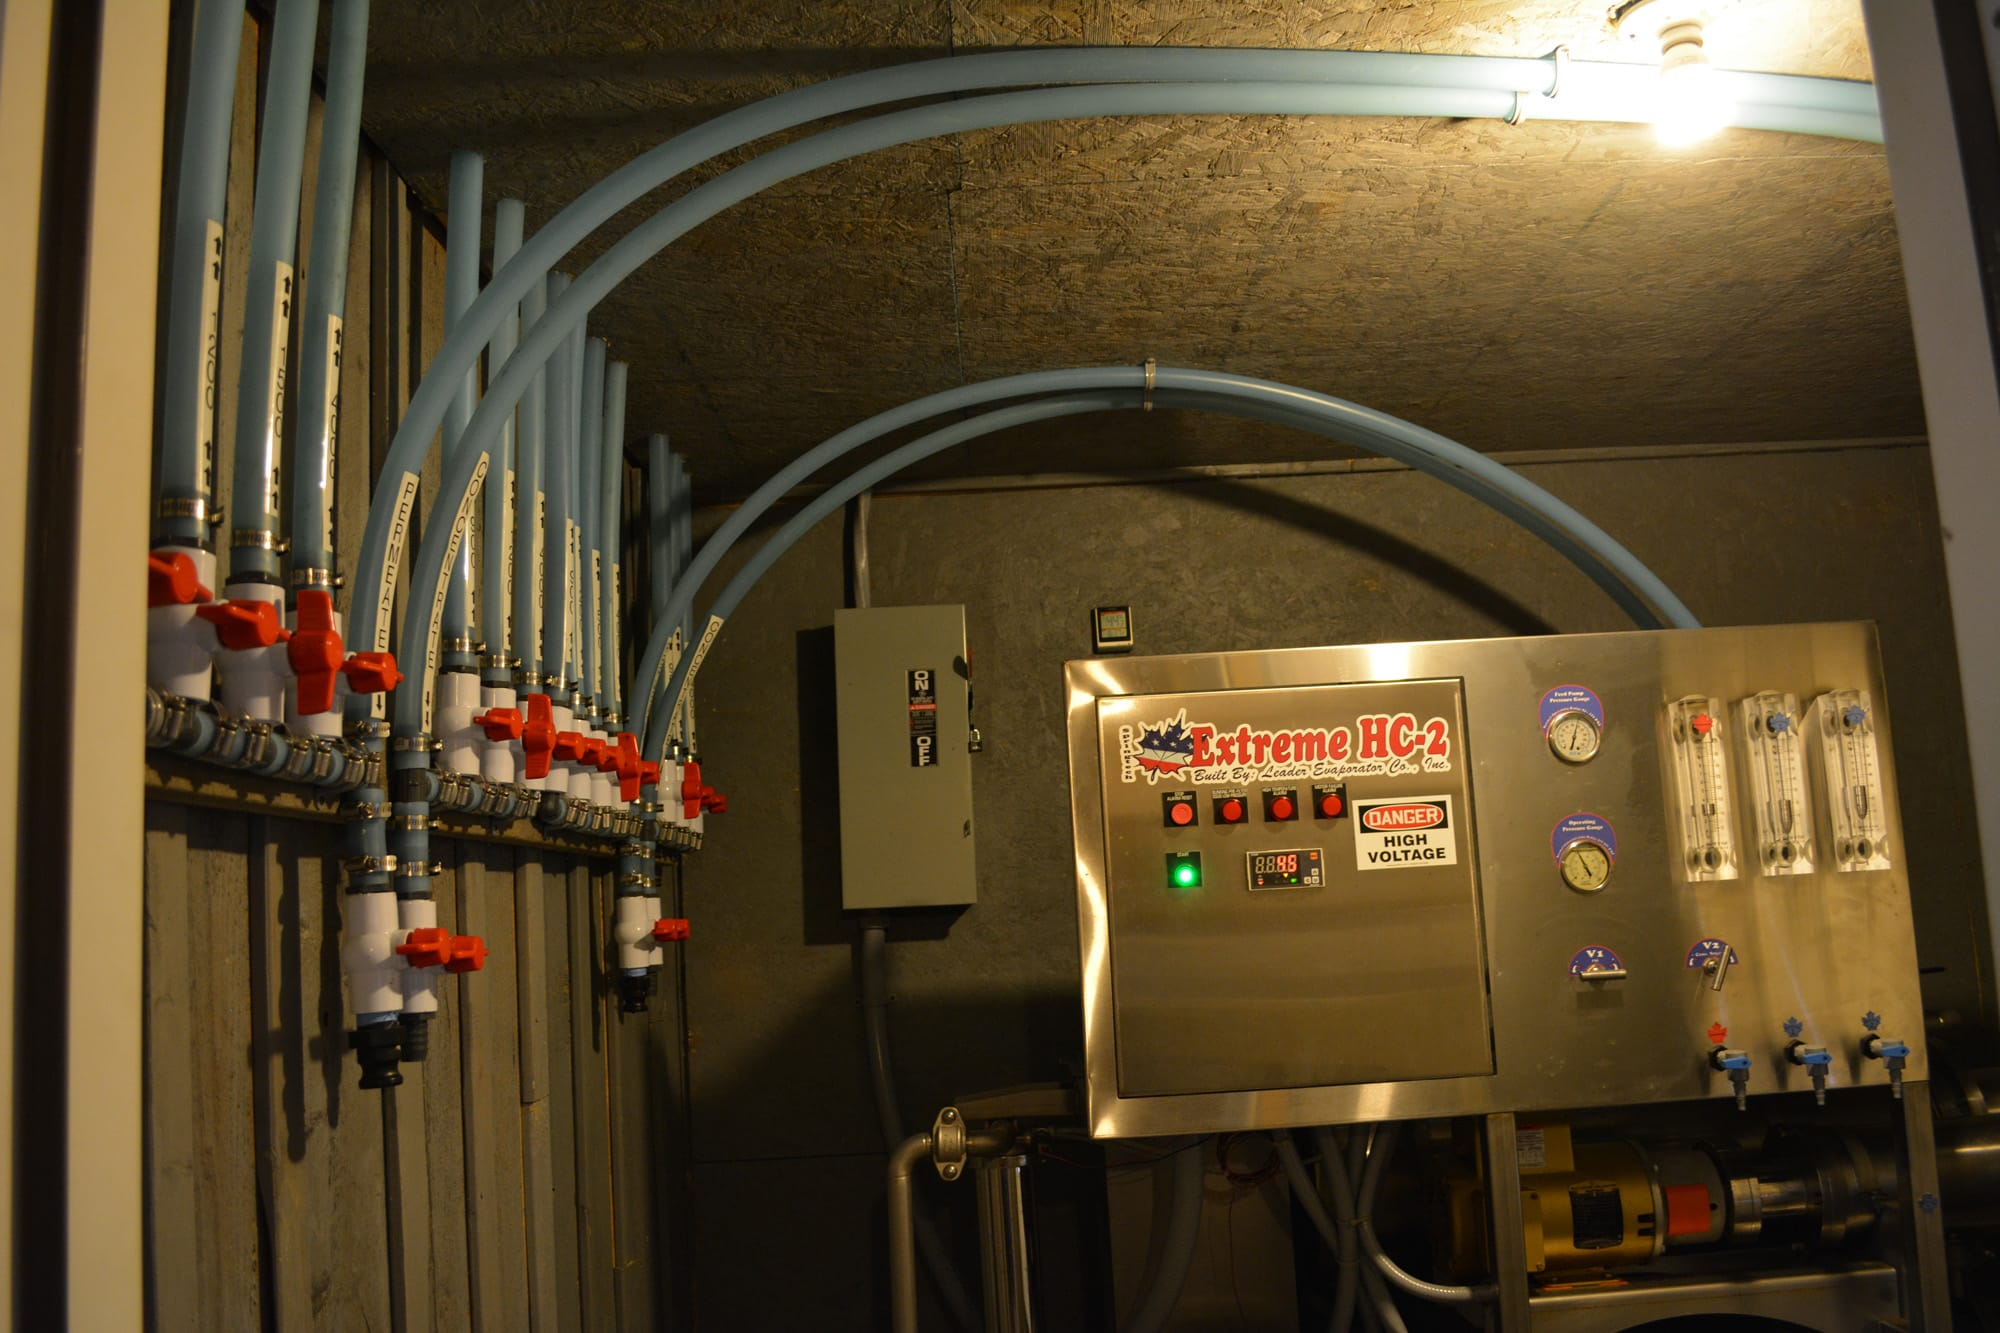 Through a series of tubes lining the ceiling of Dutch Hill's sugarhouse, the sap enters the reverse osmosis machine. The technology removes at least 75 percent of the water from the sap and concentrates the liquid to be 10 percent sugar, which helps cut boiling time and fuel consumption.